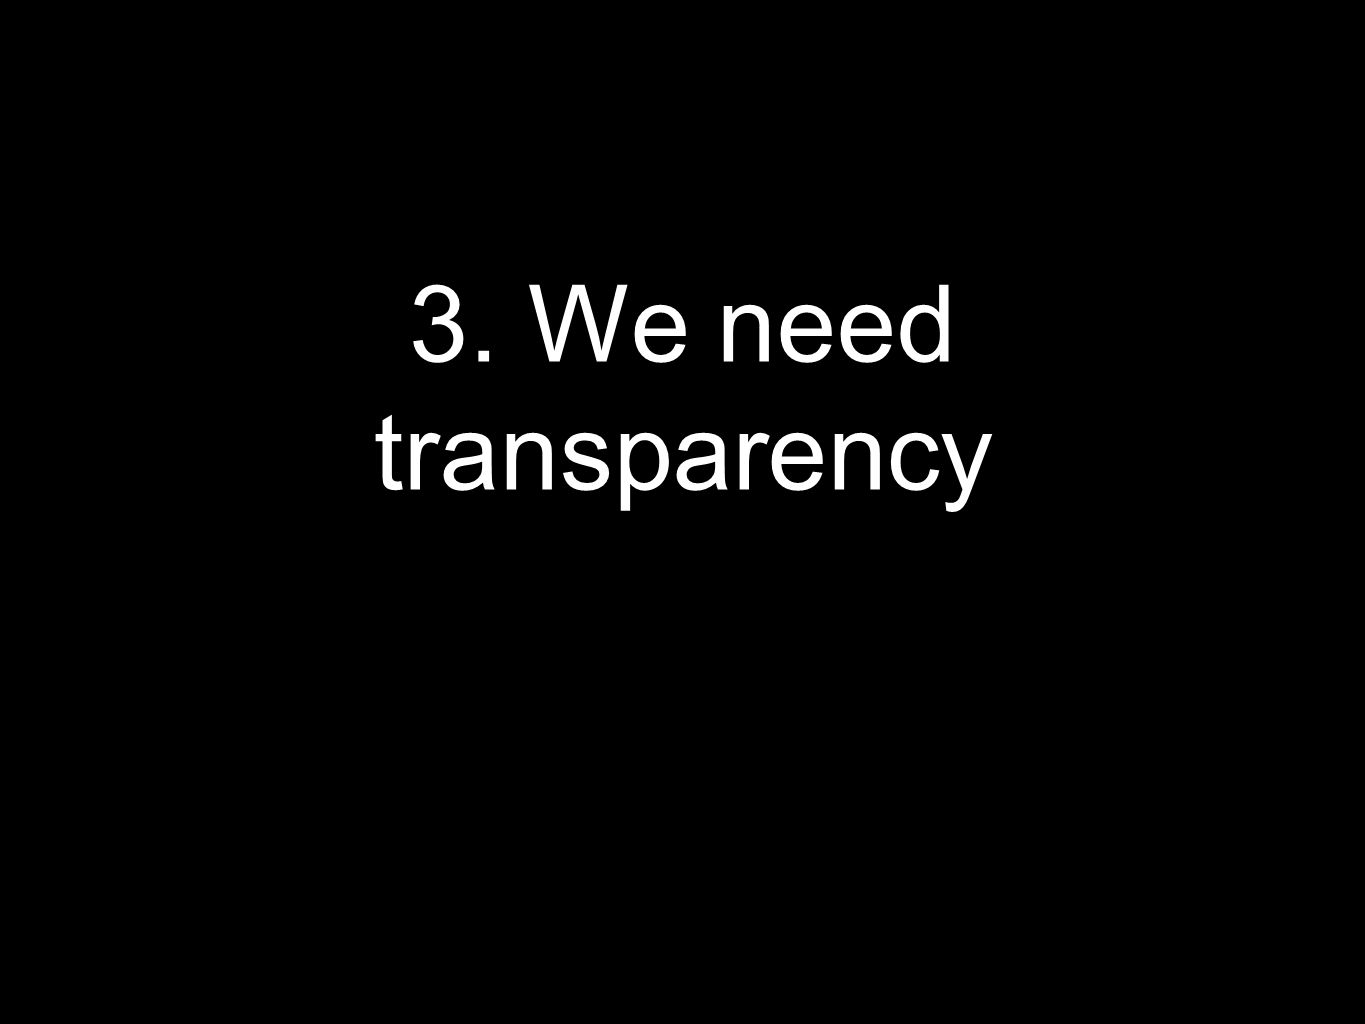 3. We need transparency